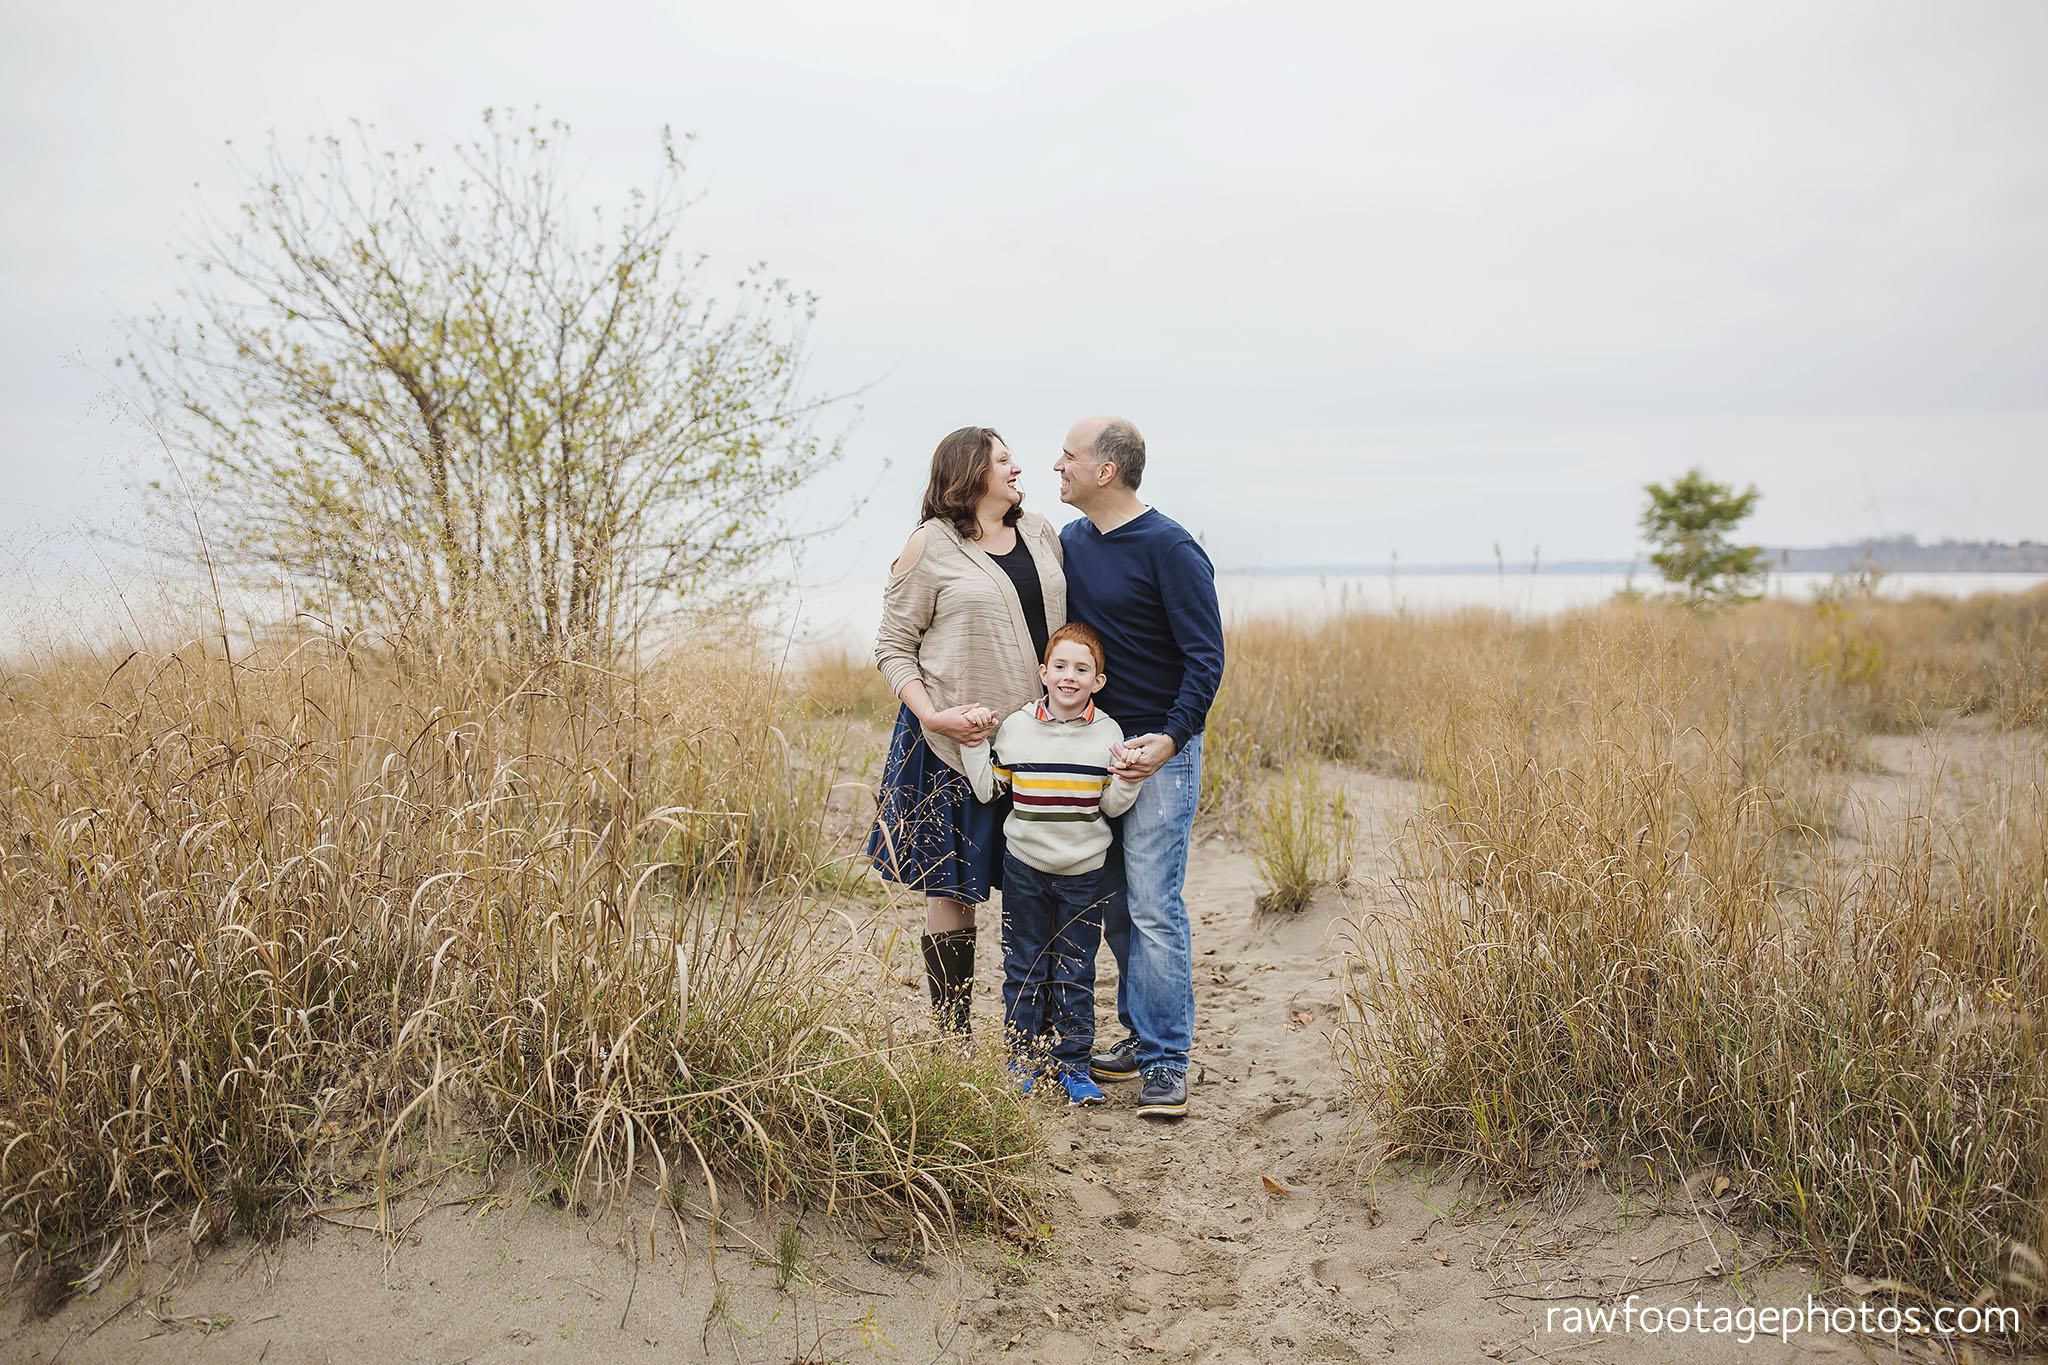 london_ontario_family_photographer-port_stanley_photography-raw_footage_photography-family_photos-beach_photos-fall_family_photos-lifestyle_family_photography-candid_photographer008.jpg